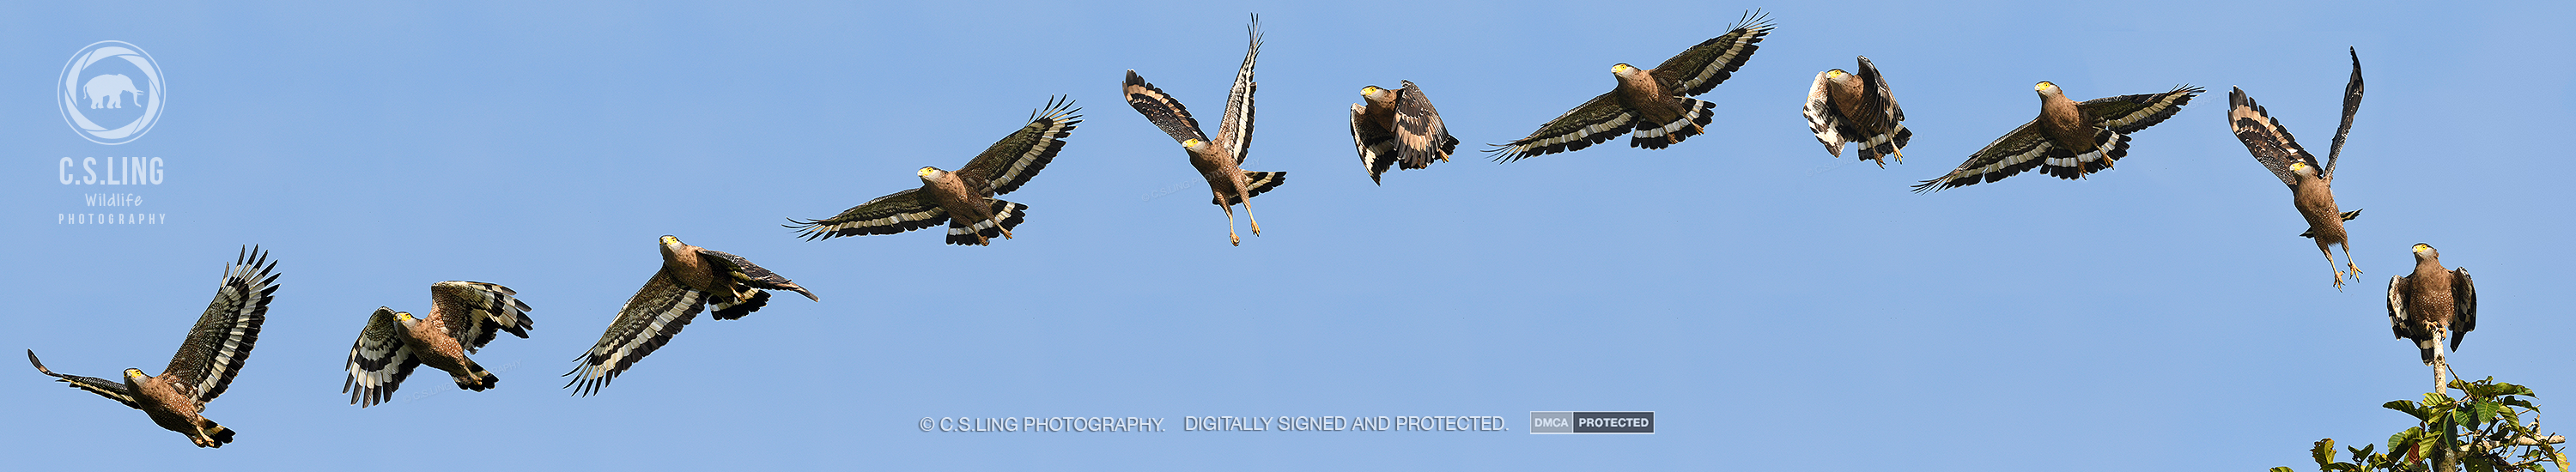 Nikon D500 10FPS Eagle Flight by C.S.Ling | Best Wildlife Photos